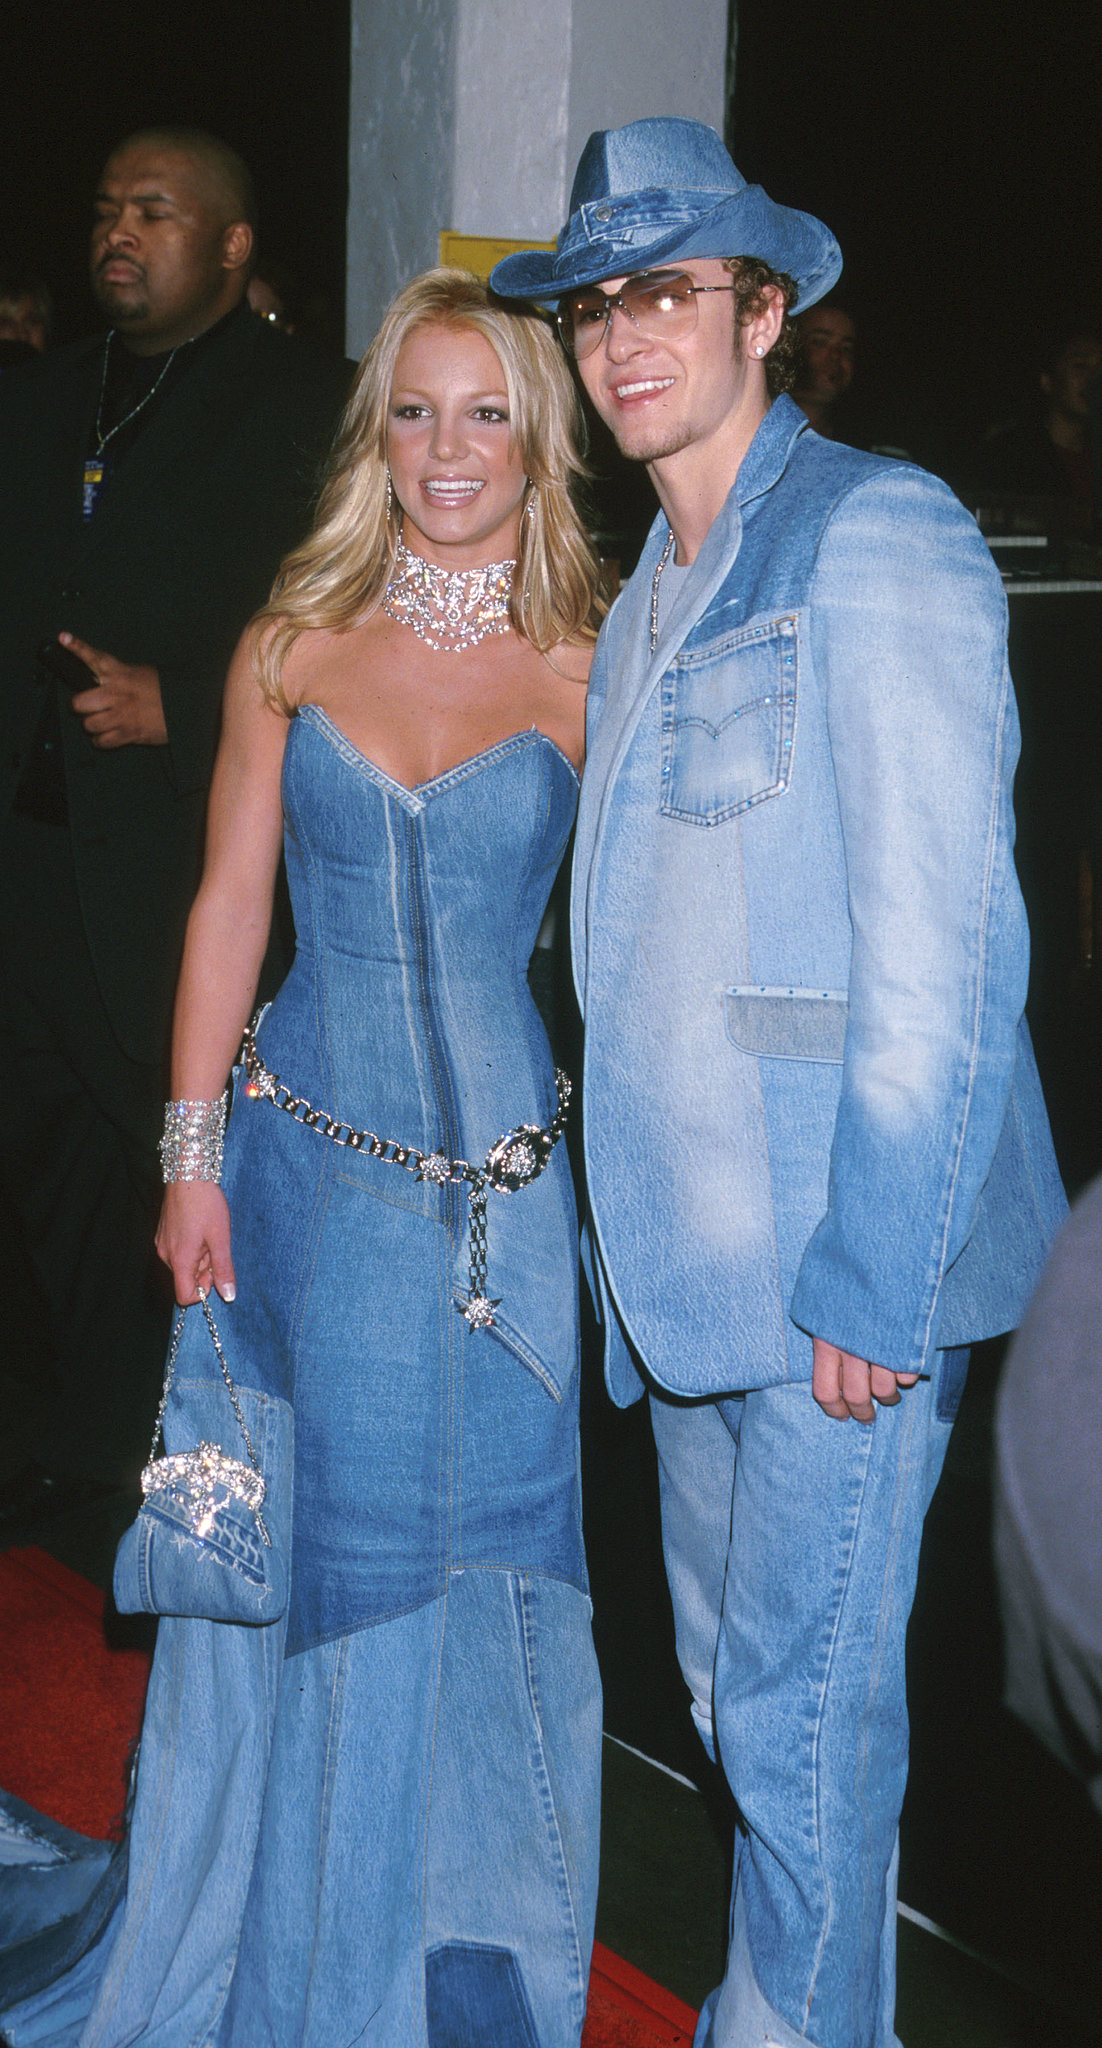 Britney Spears and then-beau Justin Timberlake posed in matching denim ensembles in 2011.